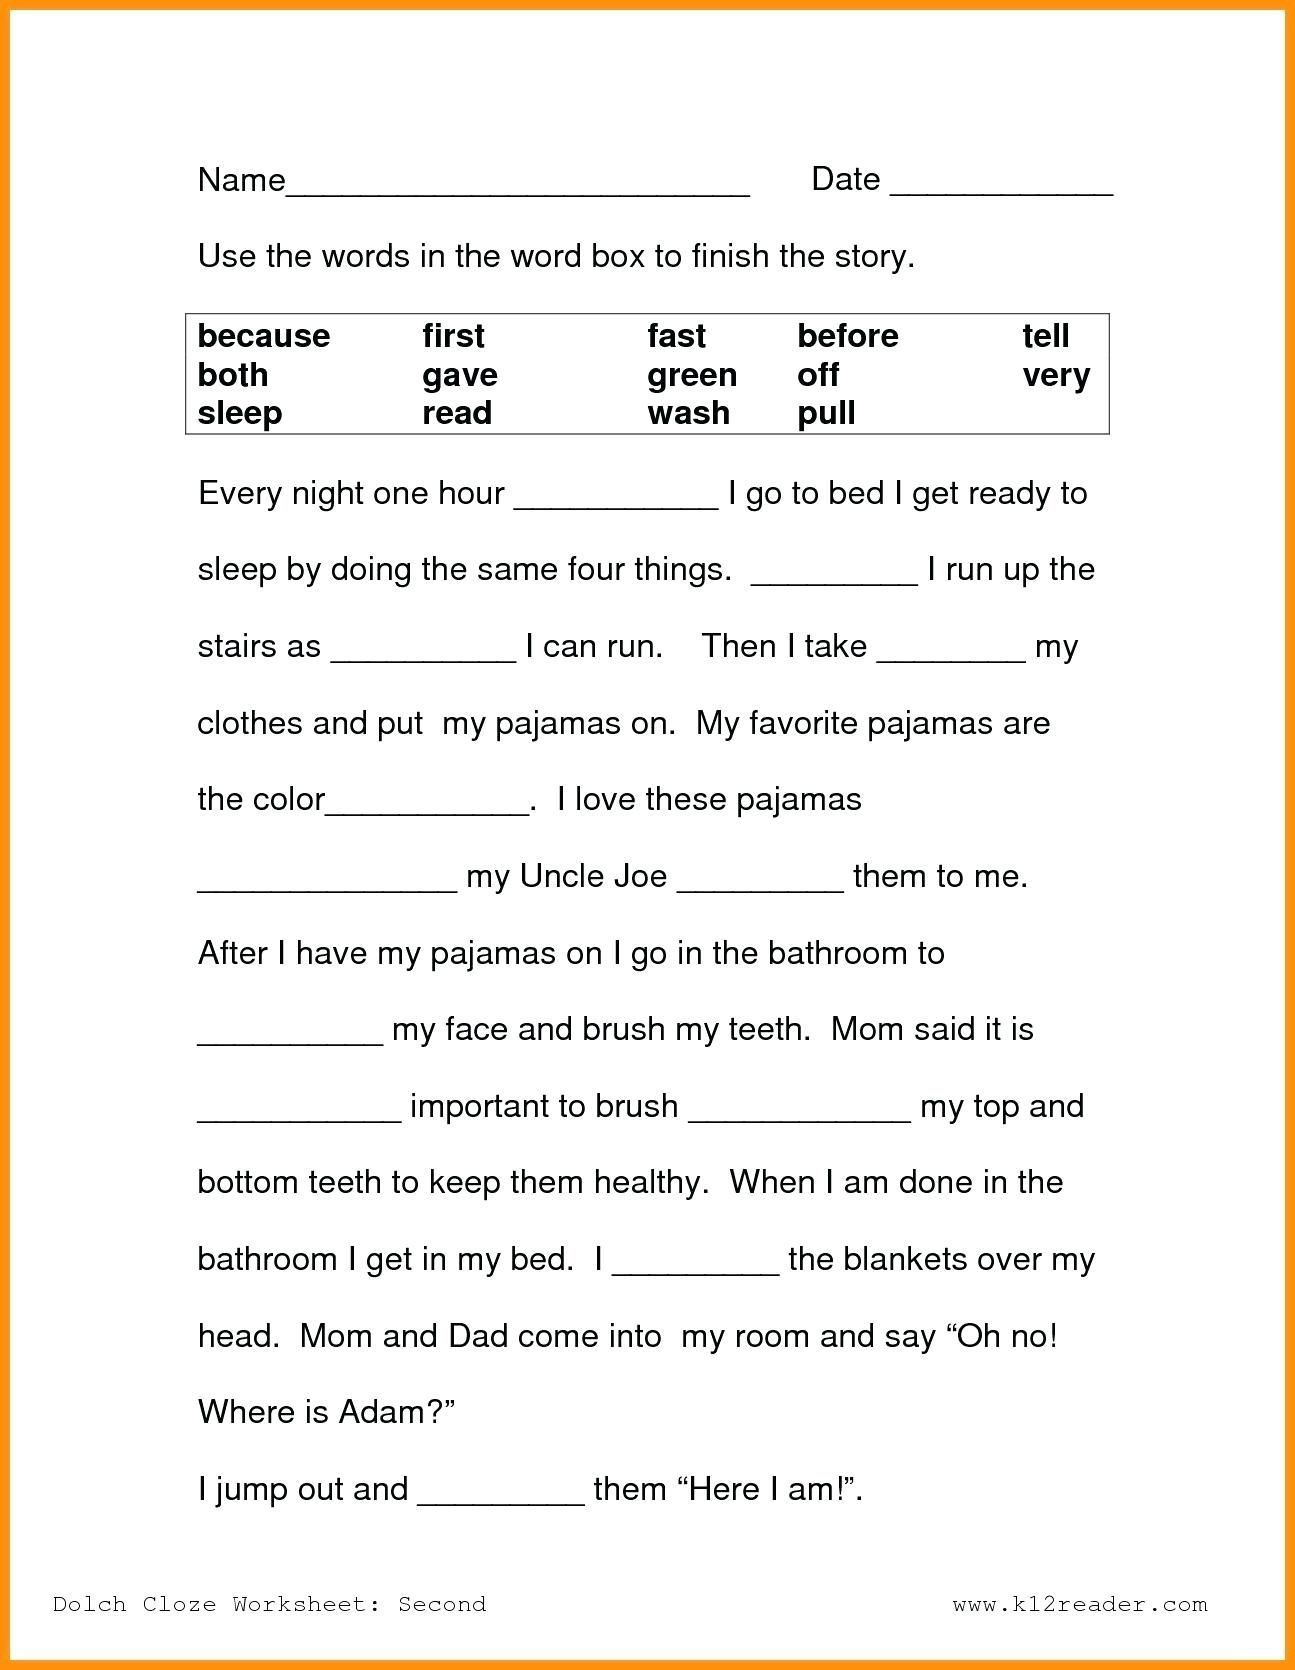 First Grade Reading Worksheets Free 1st Printable First Grade Worksheets  Readi… in 2021   2nd grade reading worksheets [ 1670 x 1295 Pixel ]